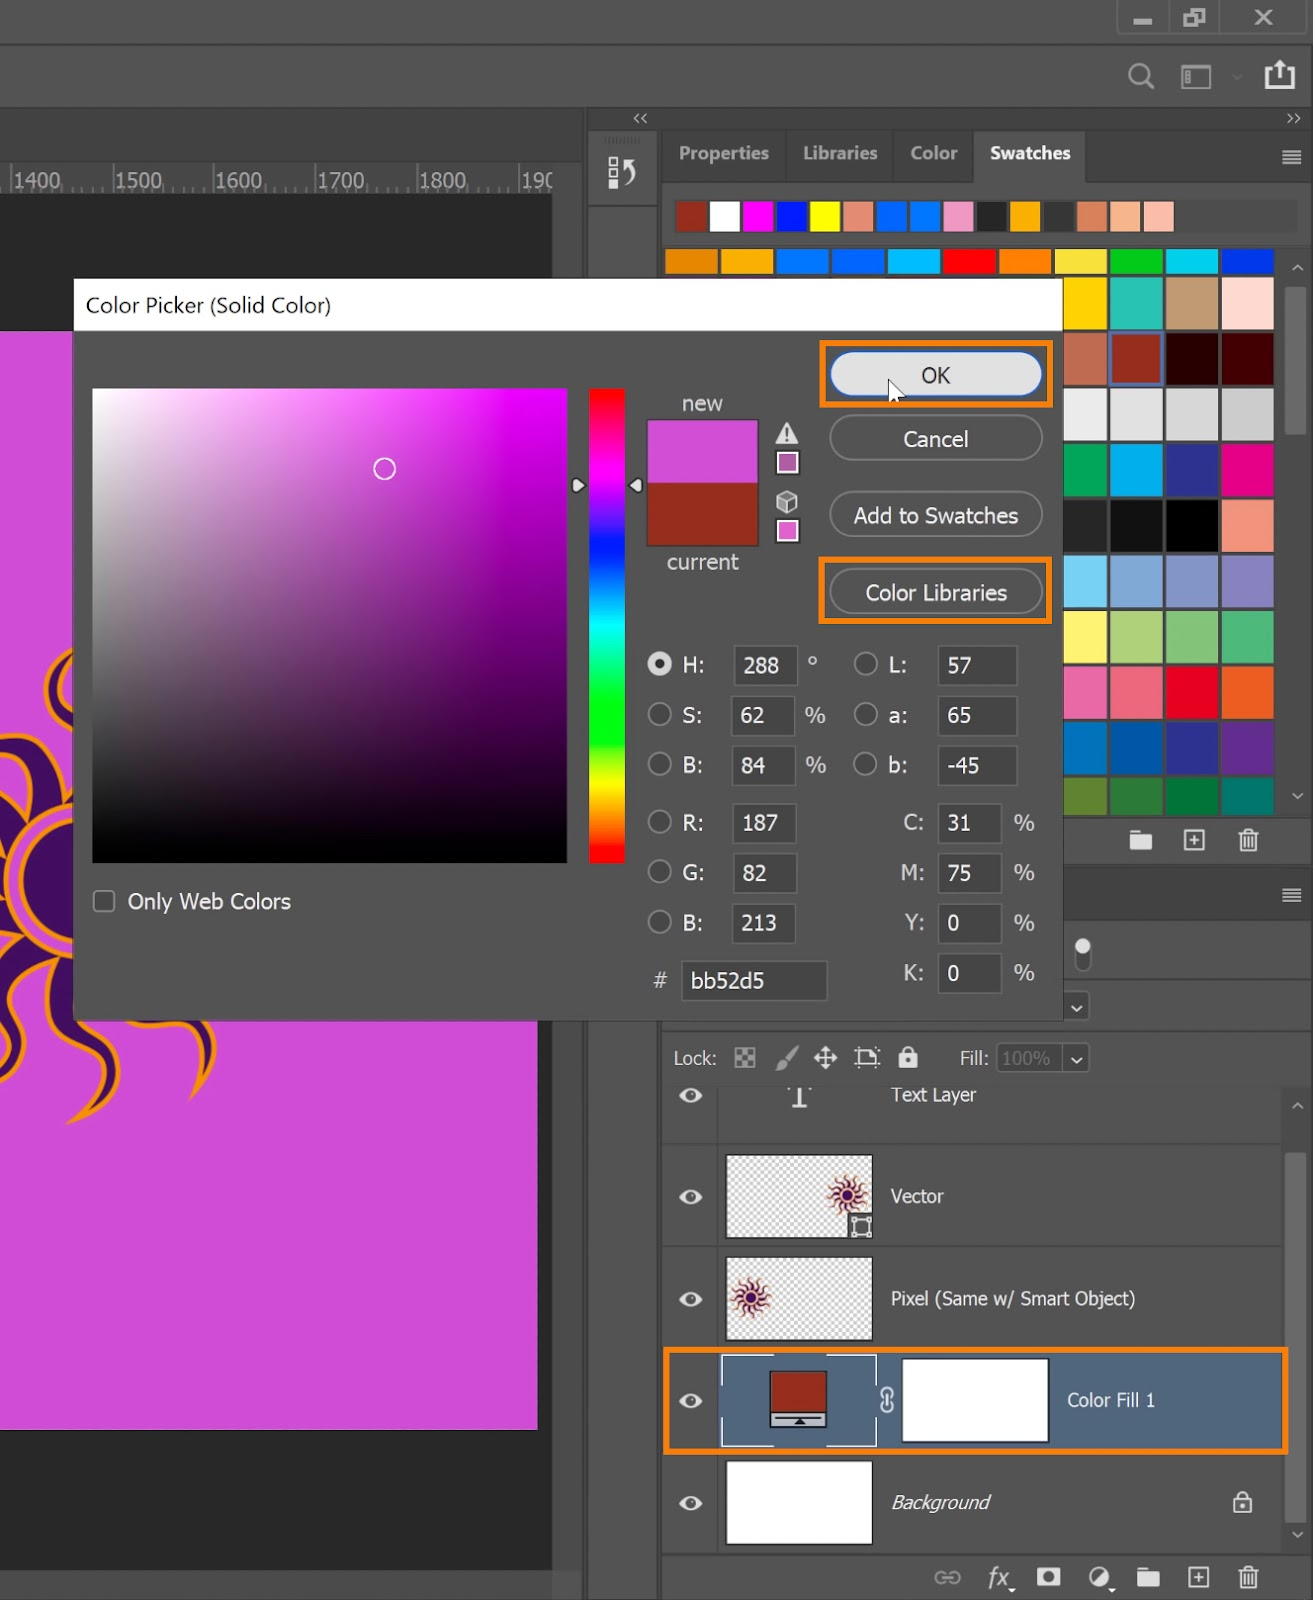 Select a color in the Color Picker window and press OK